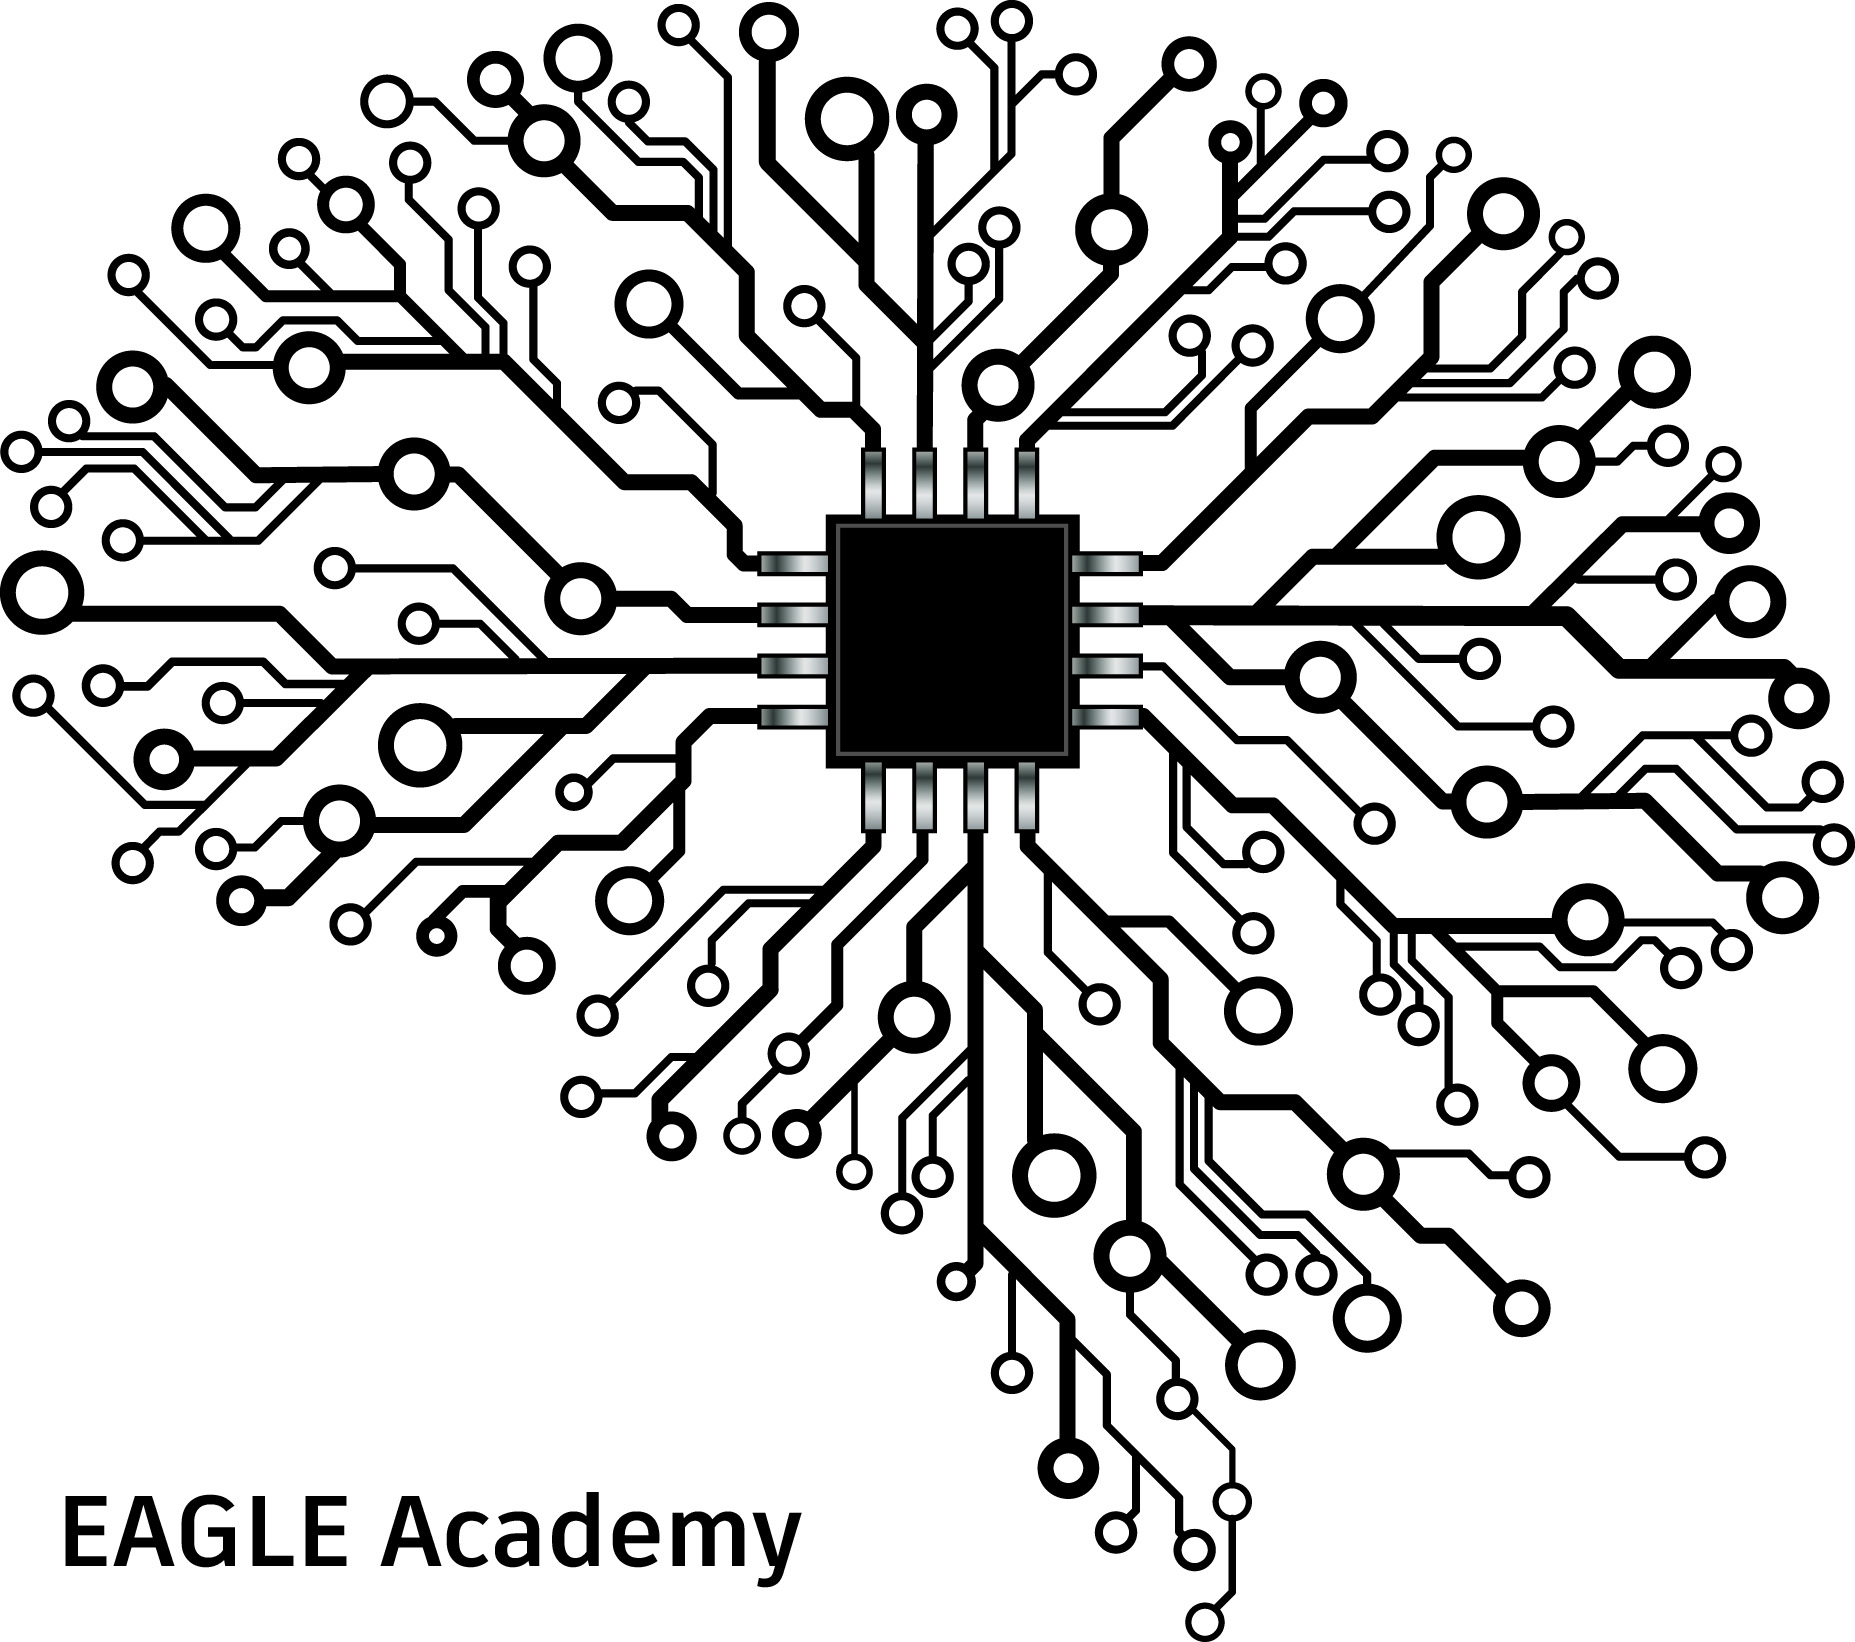 hight resolution of eagle academy